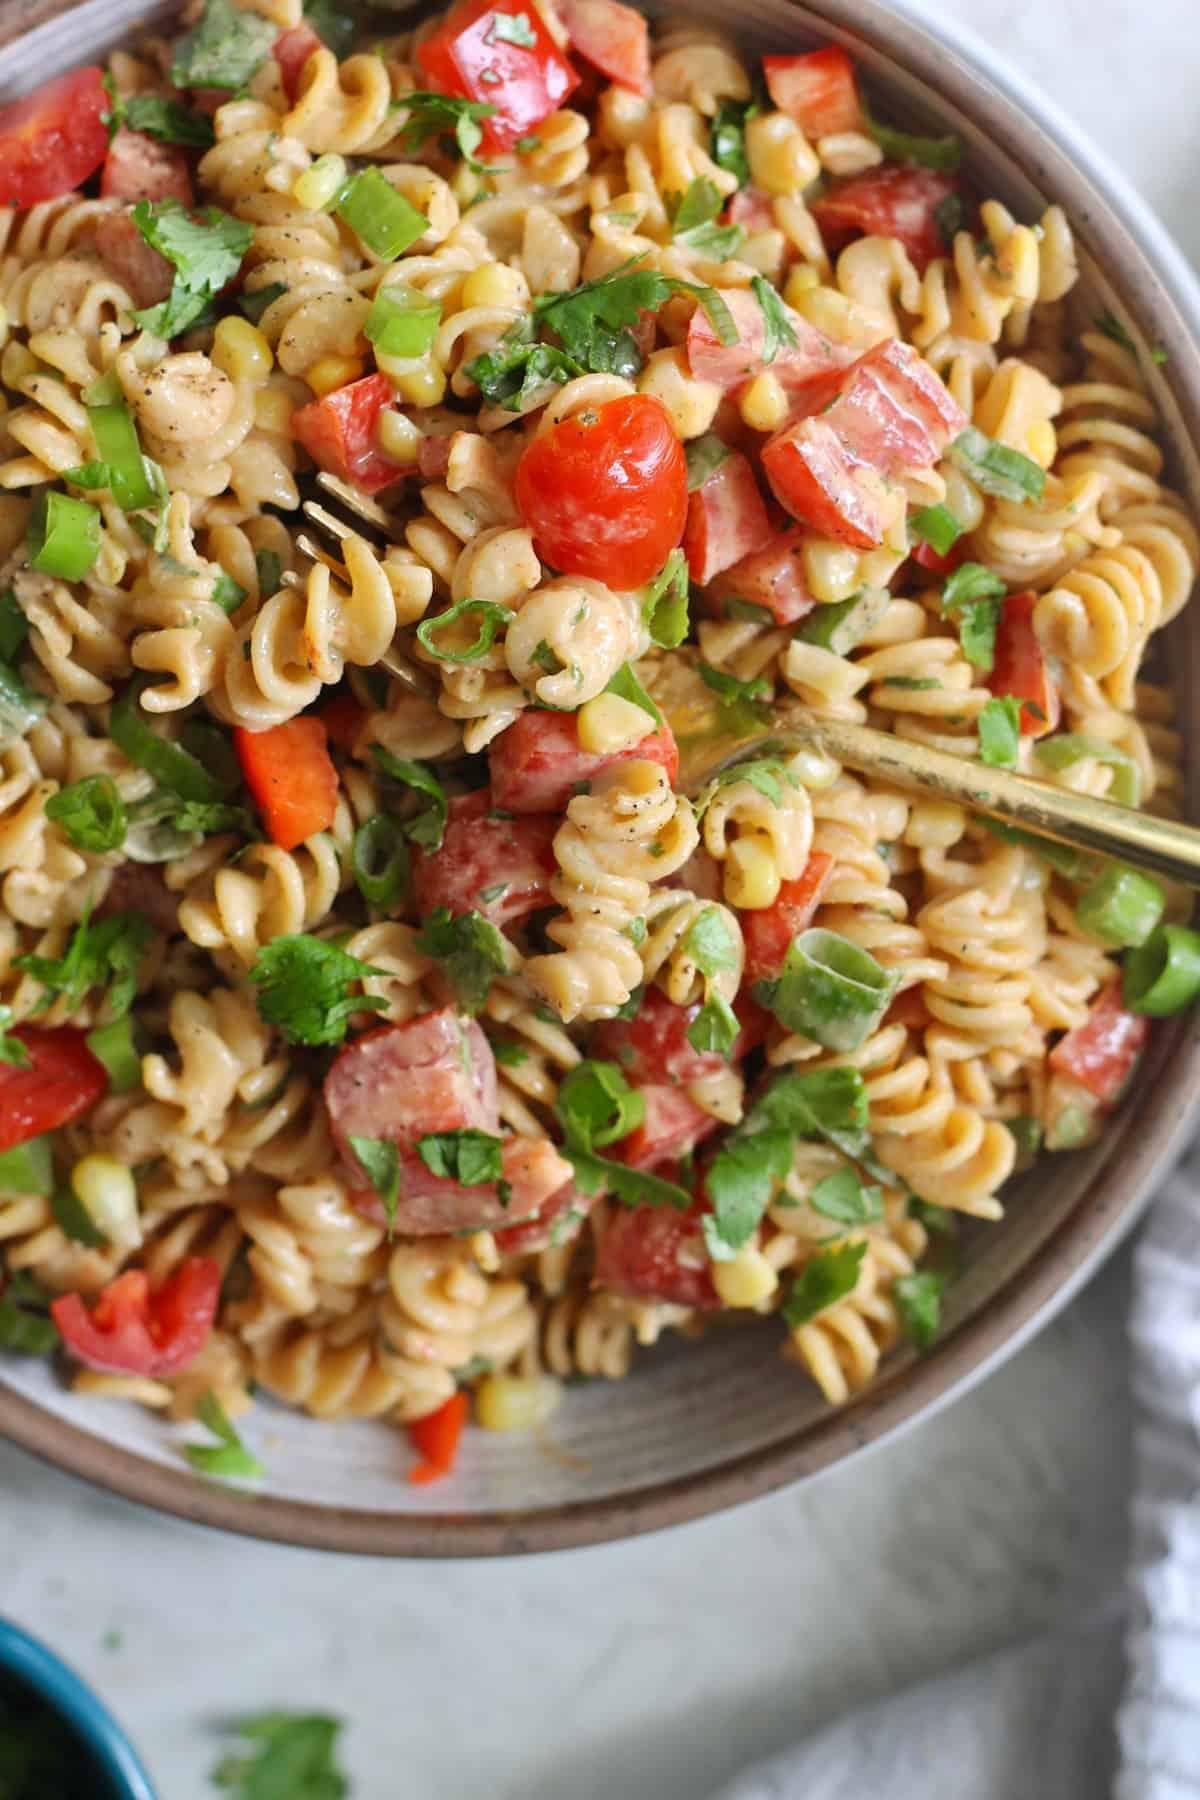 bowl of pasta salad with vegetables